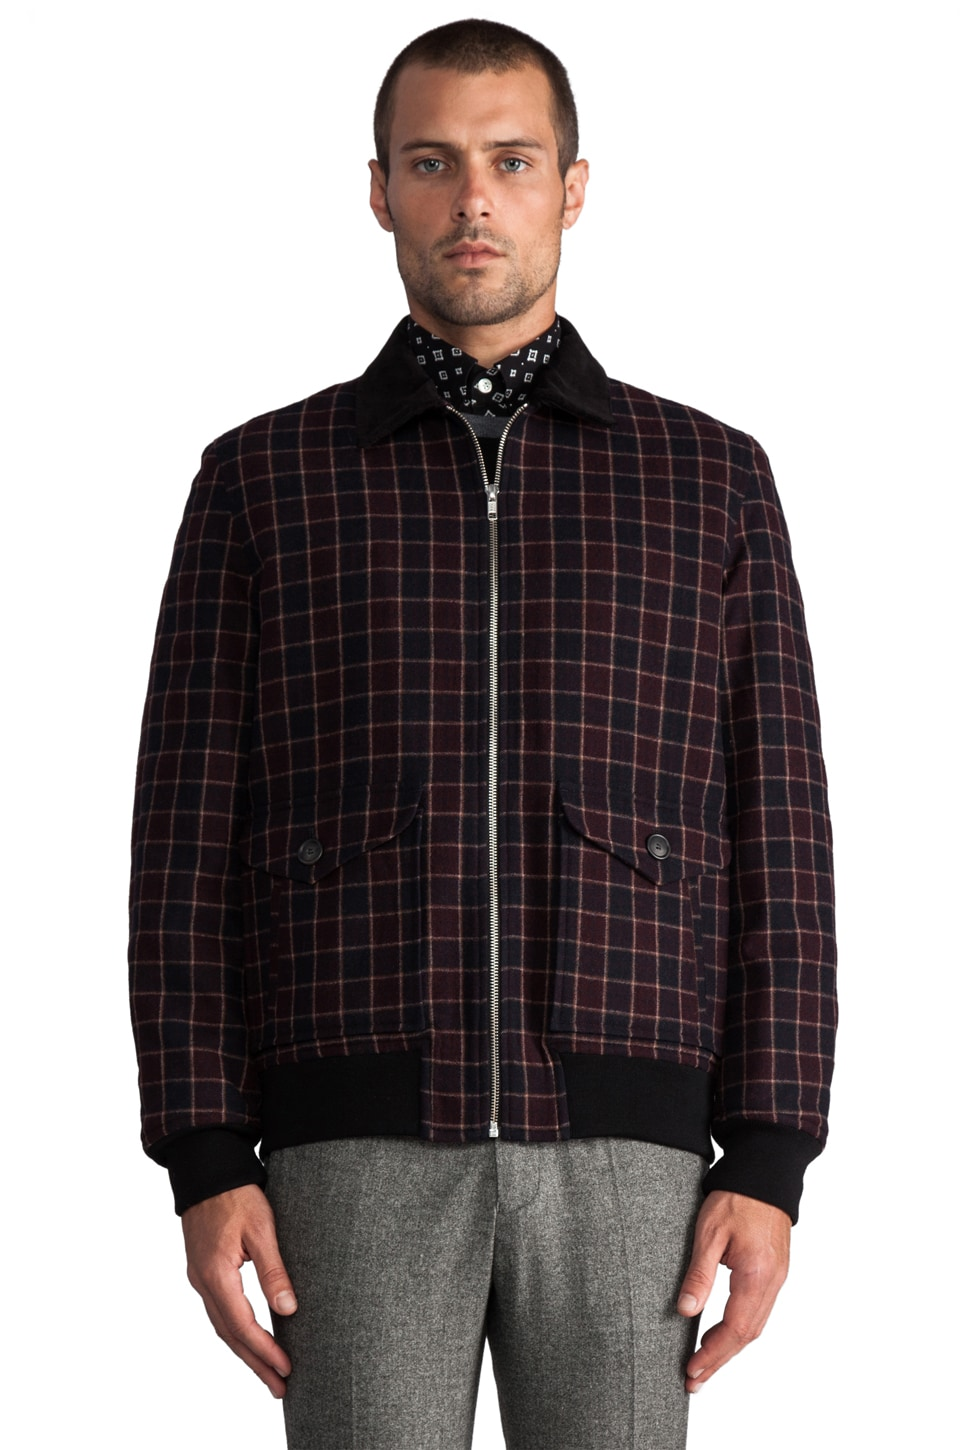 Hentsch Man Flight Jacket en Burgundy Squares